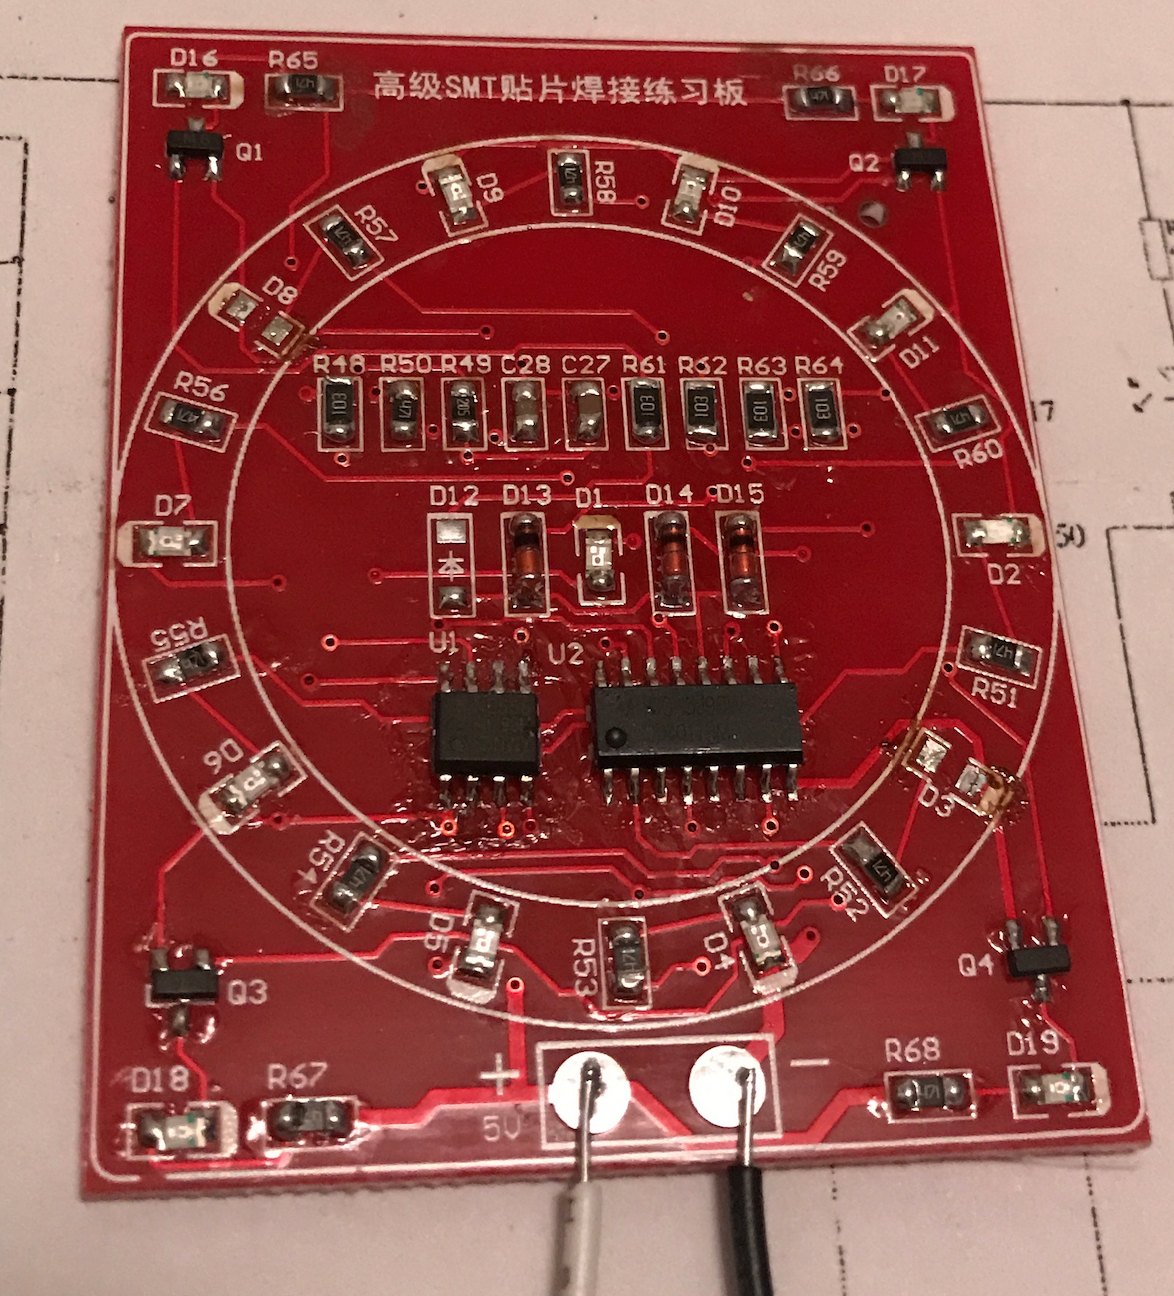 Surface Mount Electronics For Hobbyists Easier Than You Think 5v Symmetrical Regulated Power Supply 1a Electronicslab A Few Problems I Was Short Or Lost One Two Leds And Also Diode Lets See It If Works Regardless Powering From Rails On Raspberry Pi 3